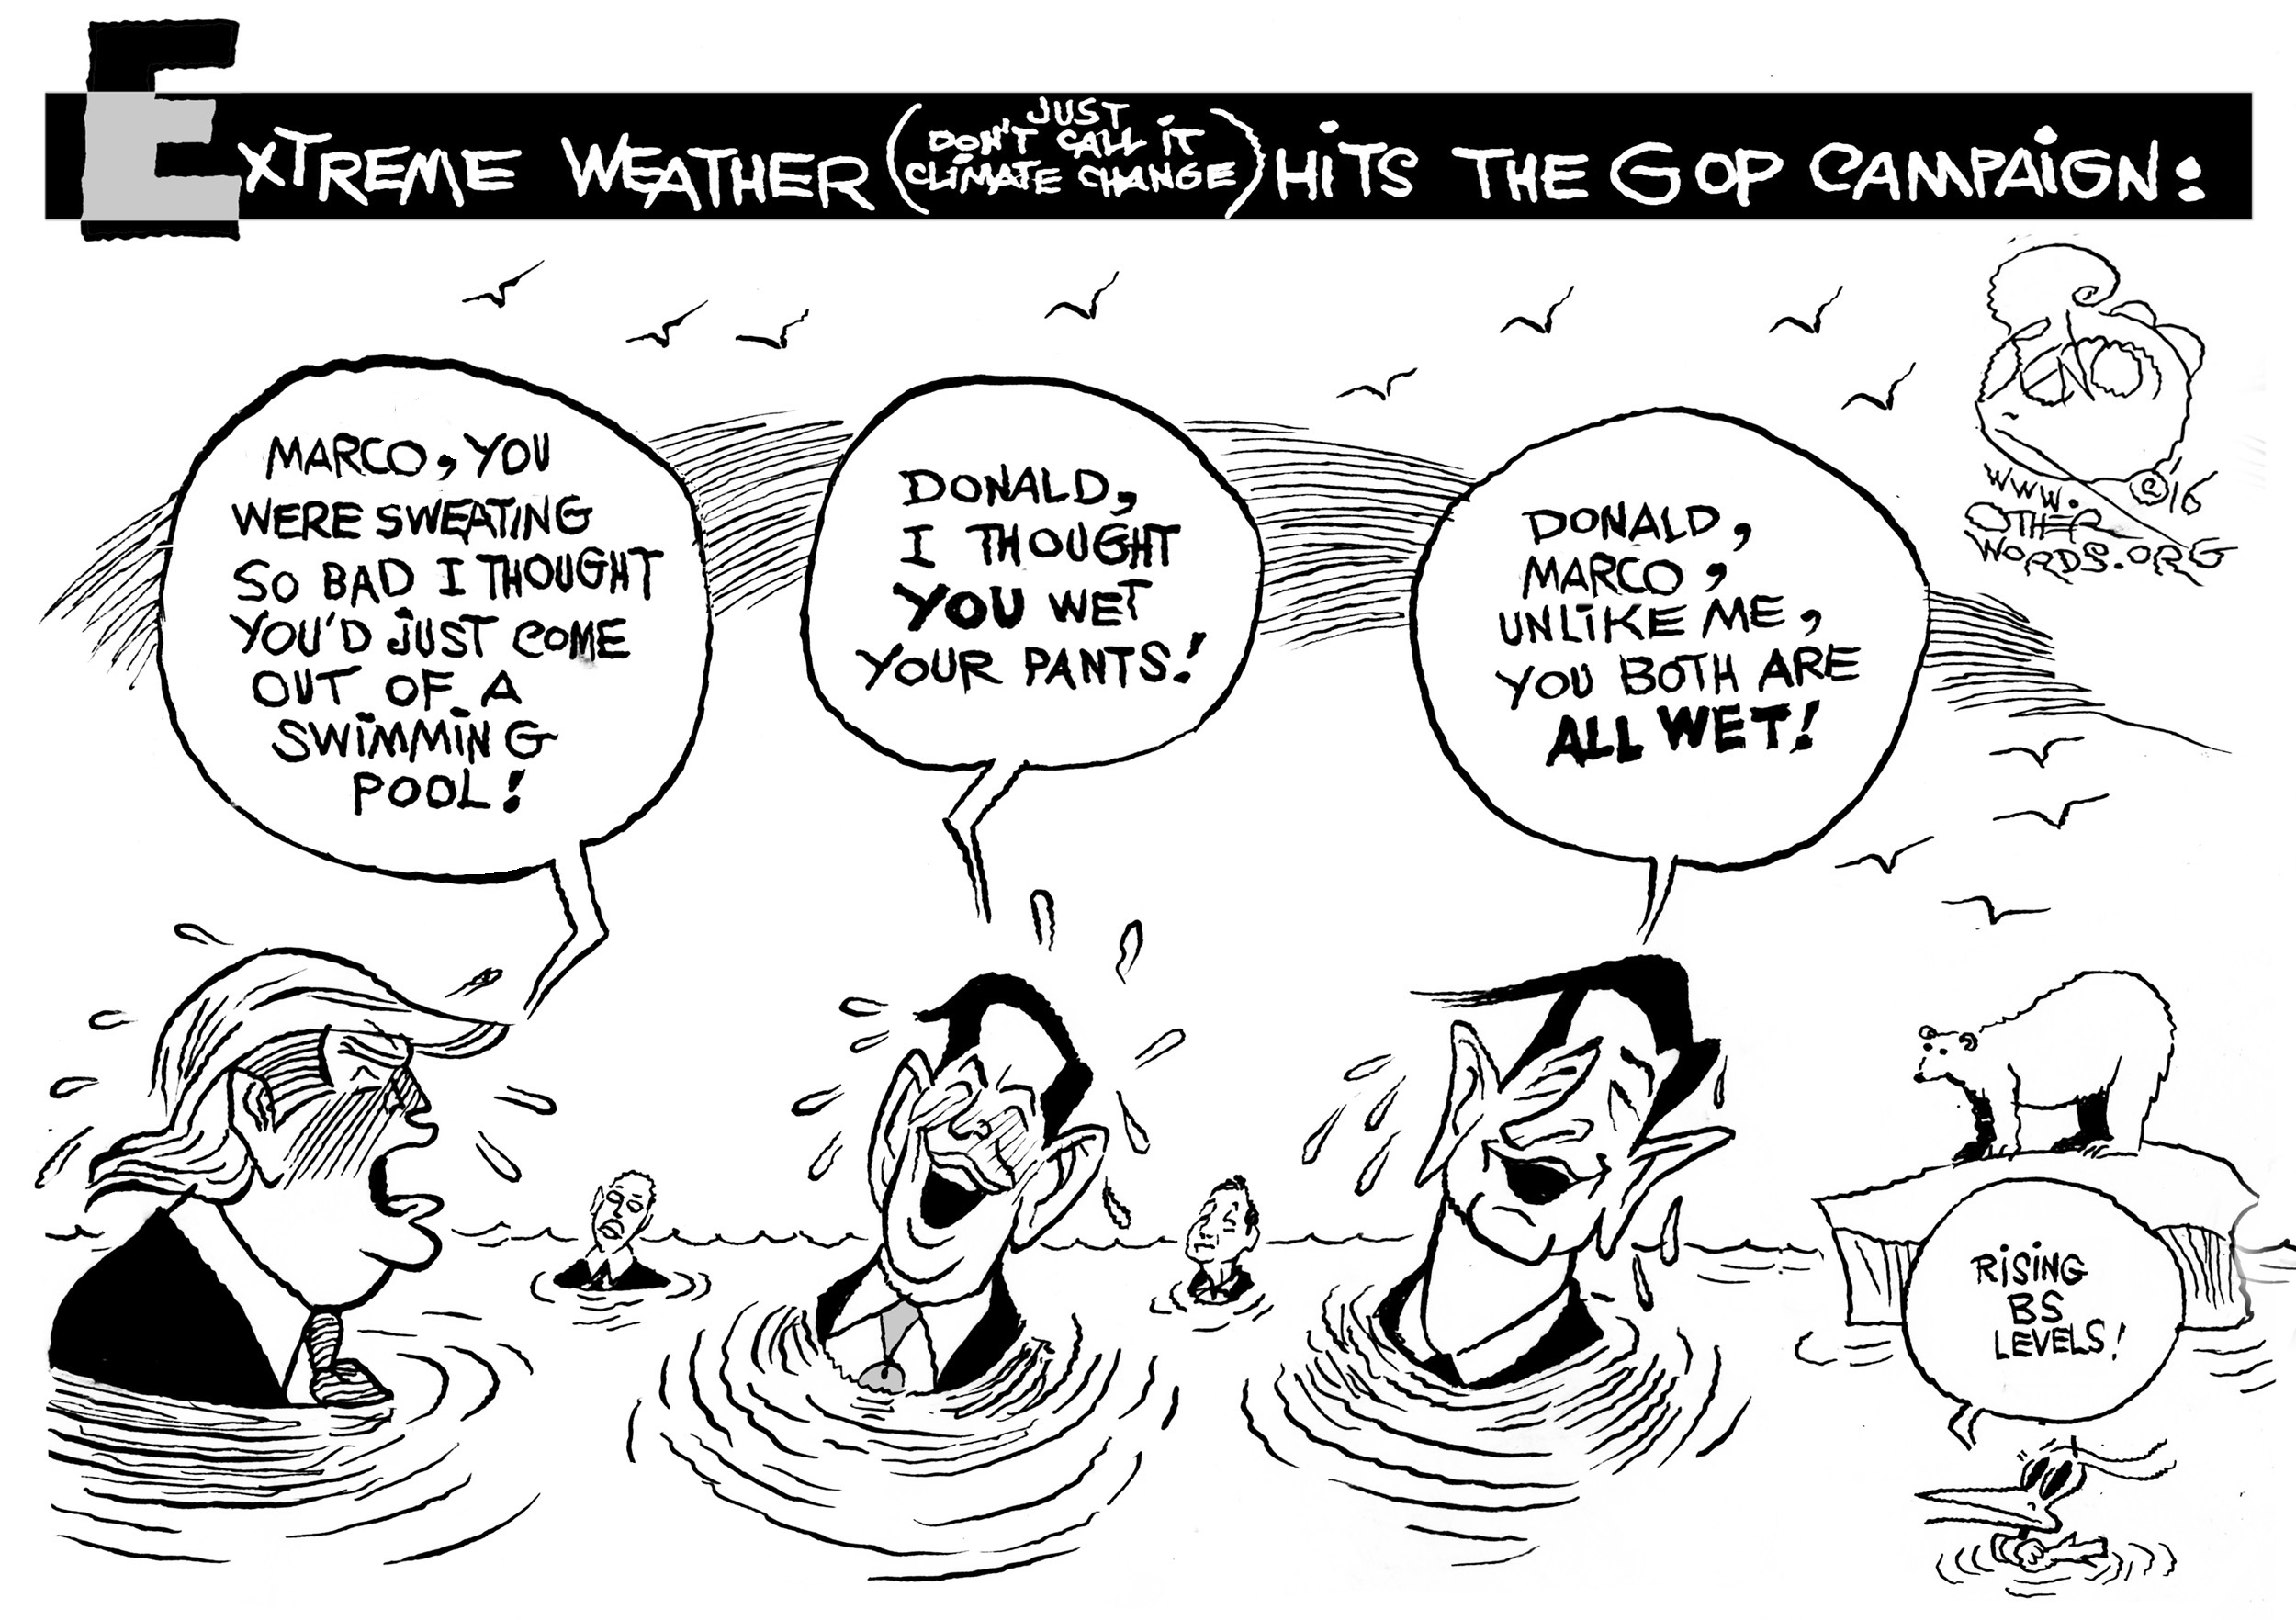 The GOP Experiences Extreme Weather